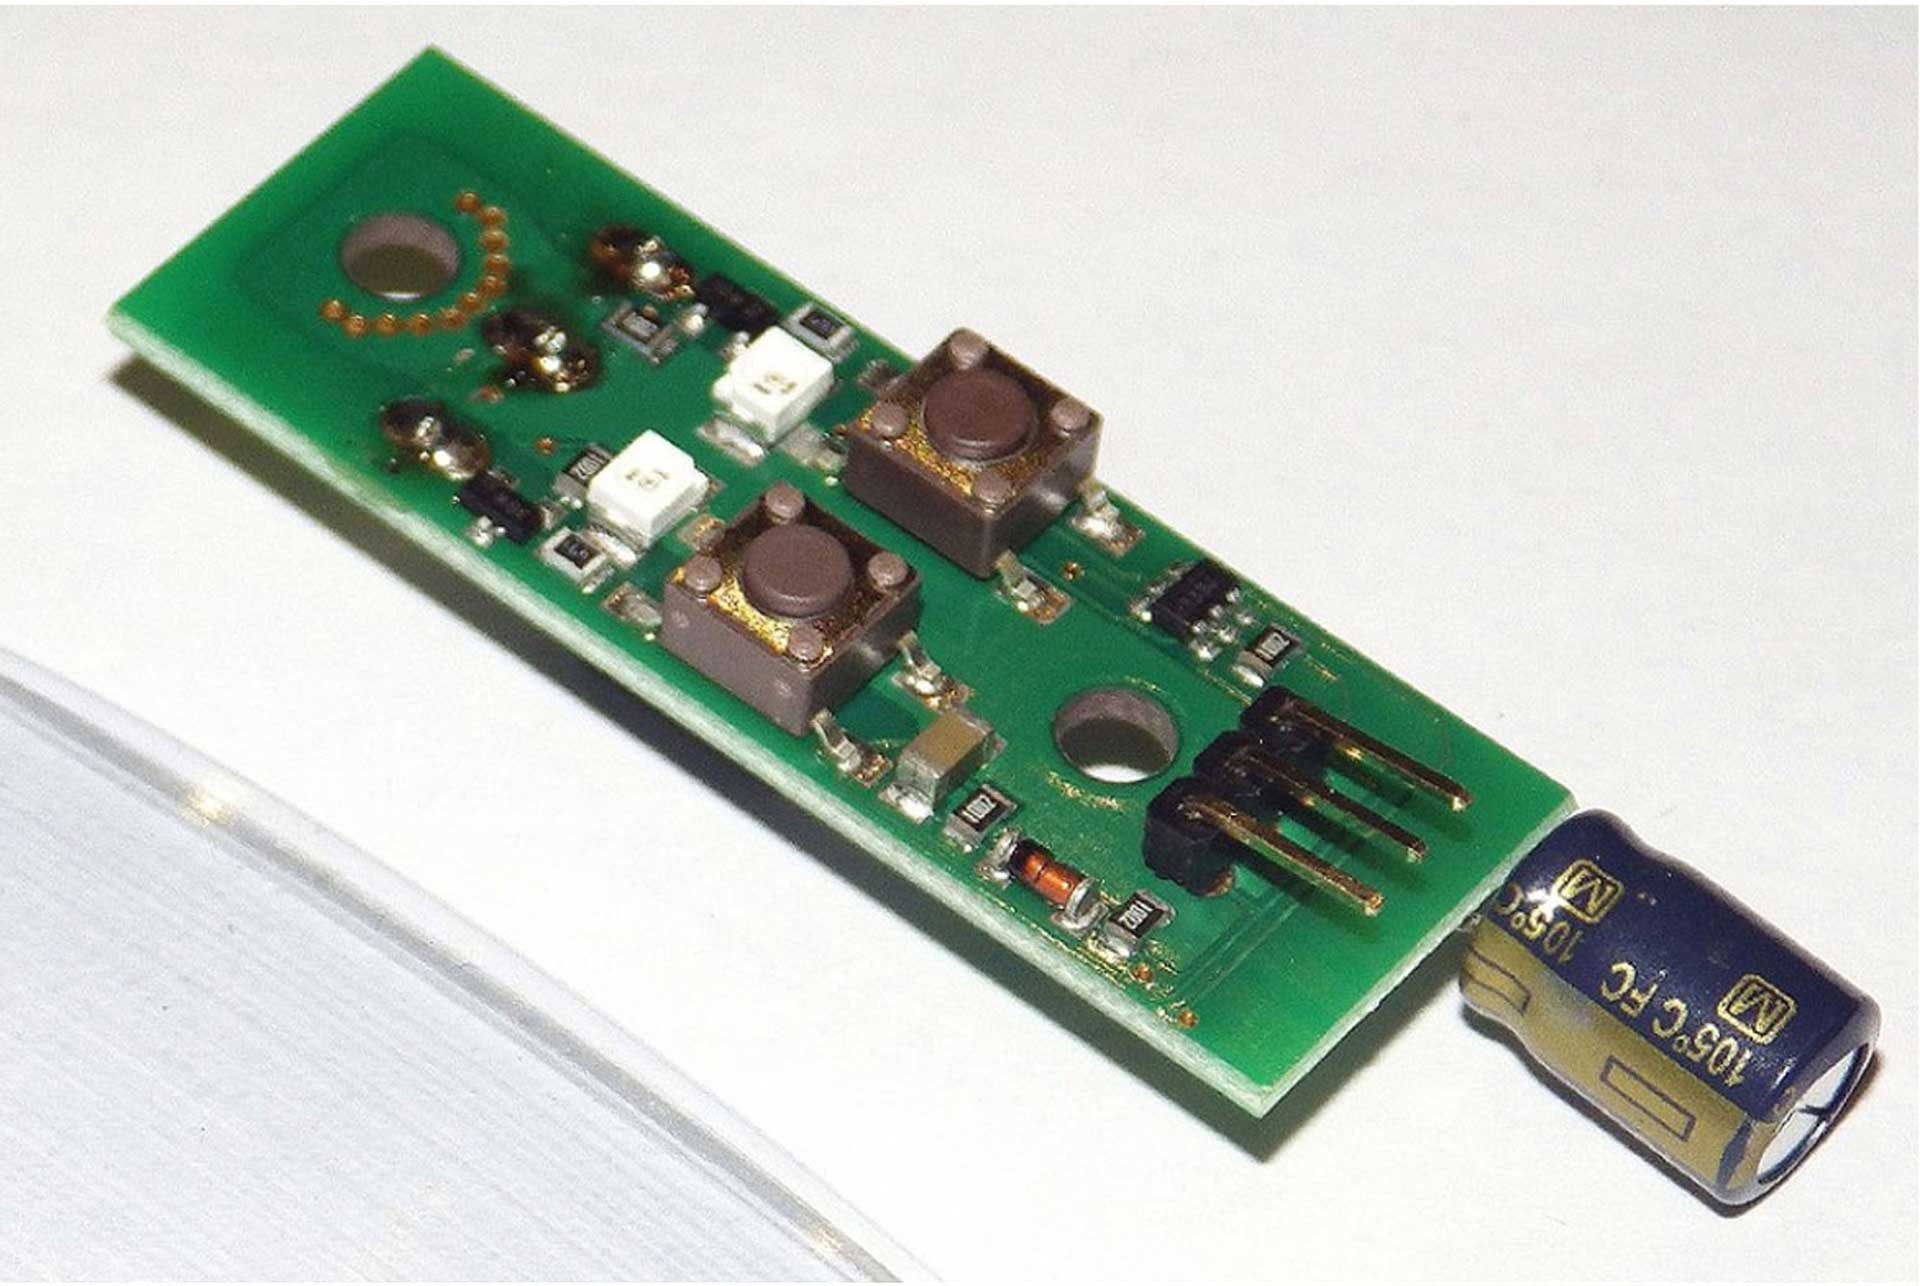 ACT DPS-25 BATTERY BACKER 25A WITH ELECTRONIC SAFETY SWITCH, CIRCUIT BOARD O. CABLE